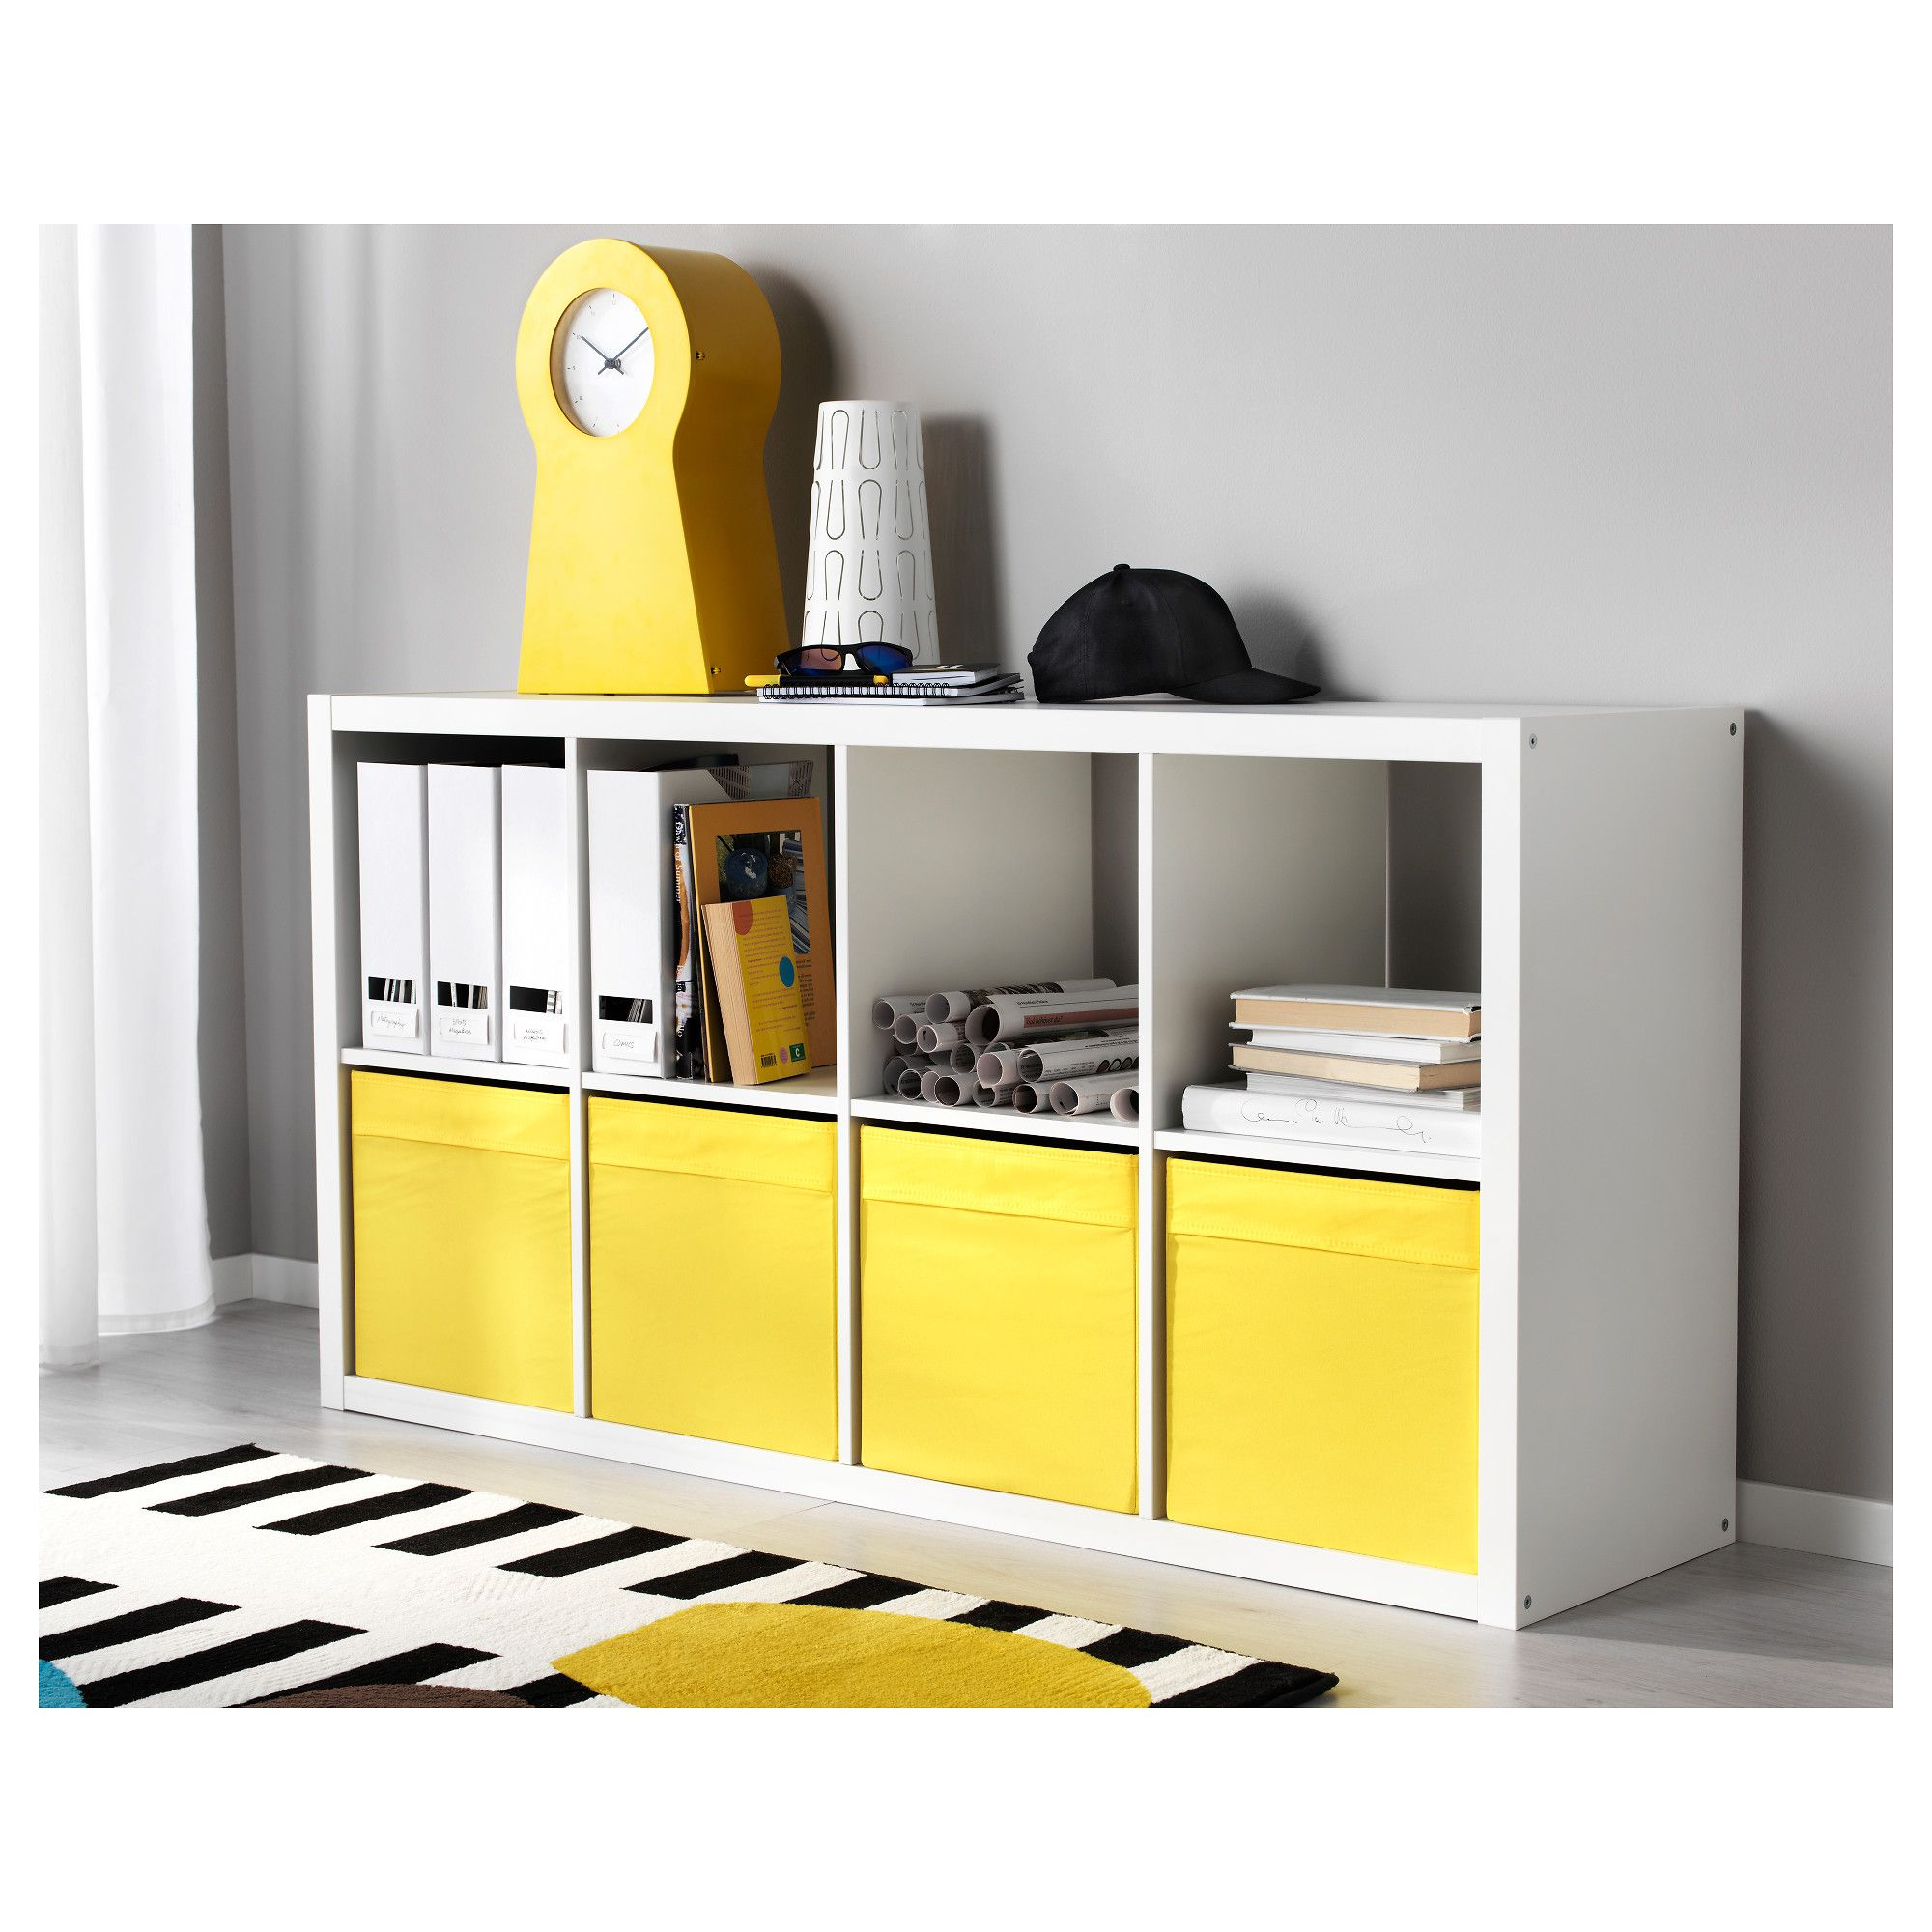 kallax shelf unit white j a c k s o n pinterest kallax shelf unit ikea kallax shelf and. Black Bedroom Furniture Sets. Home Design Ideas